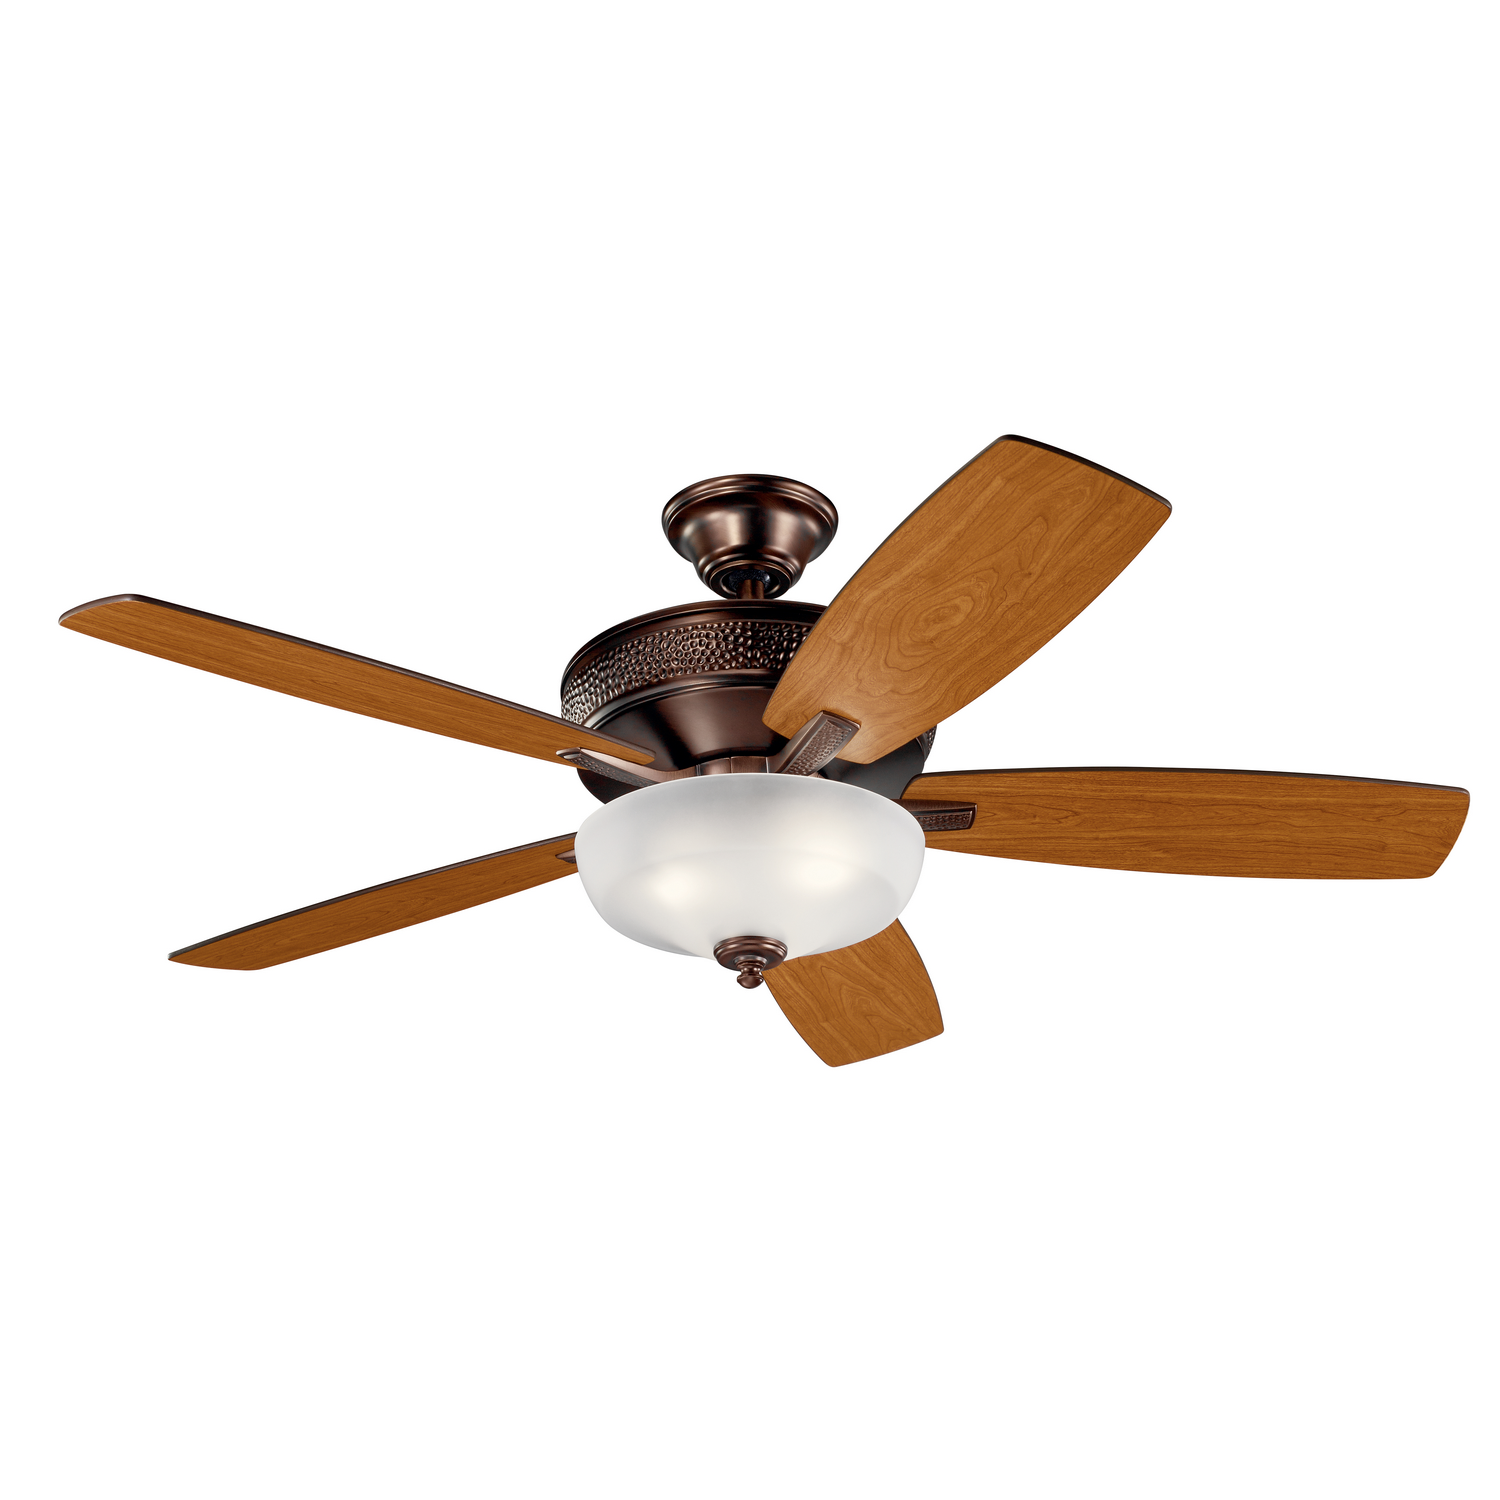 52 inchCeiling Fan from the II Select collection by Kichler 339413OBB